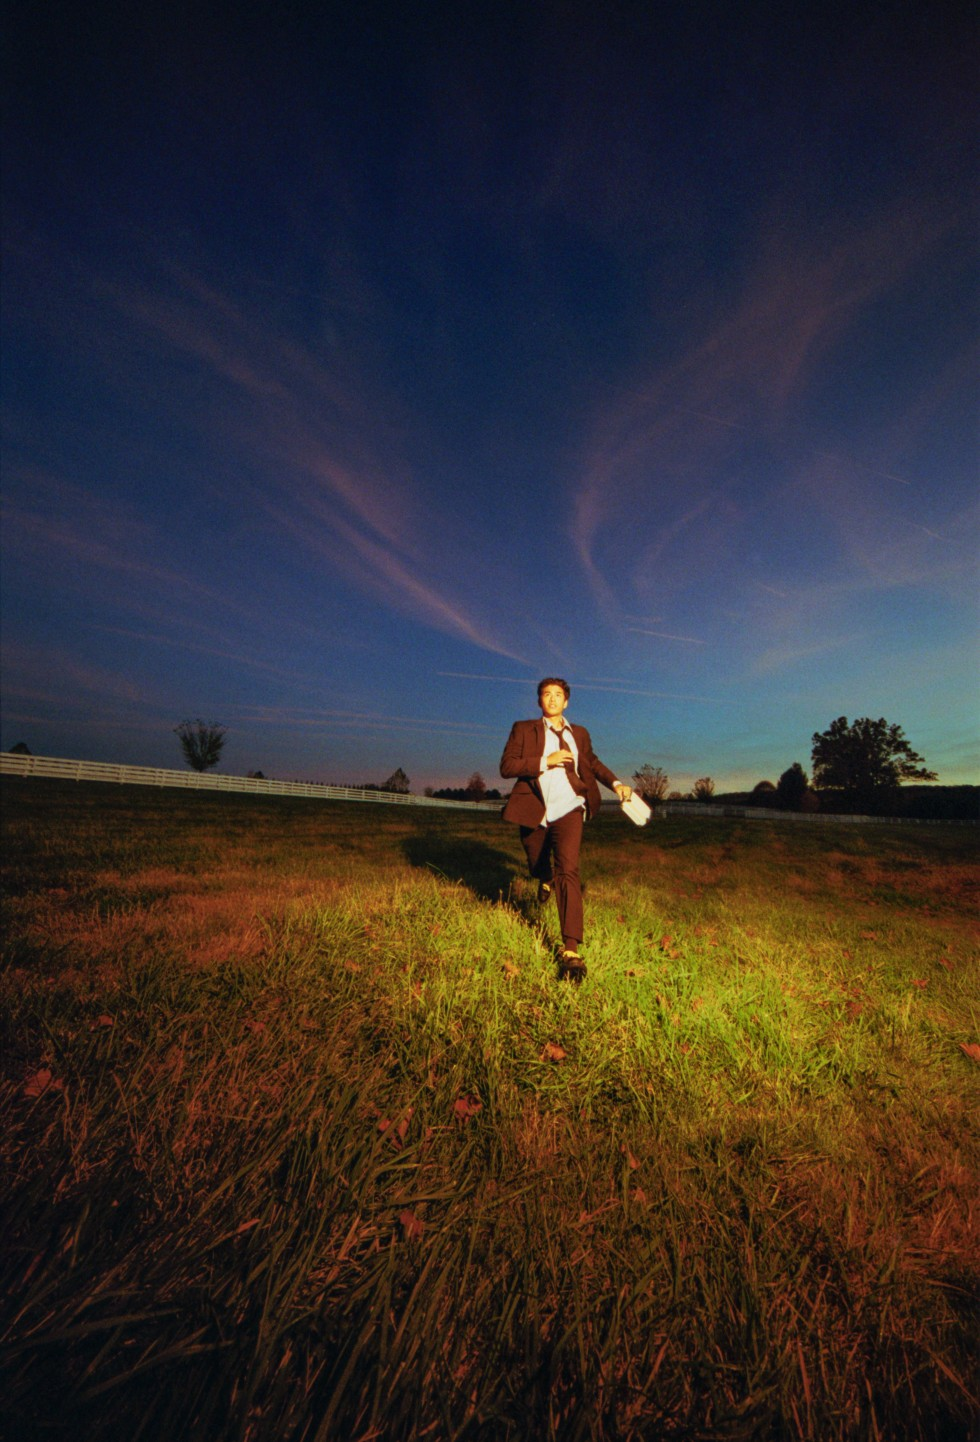 A man running in a field with a light shining on him